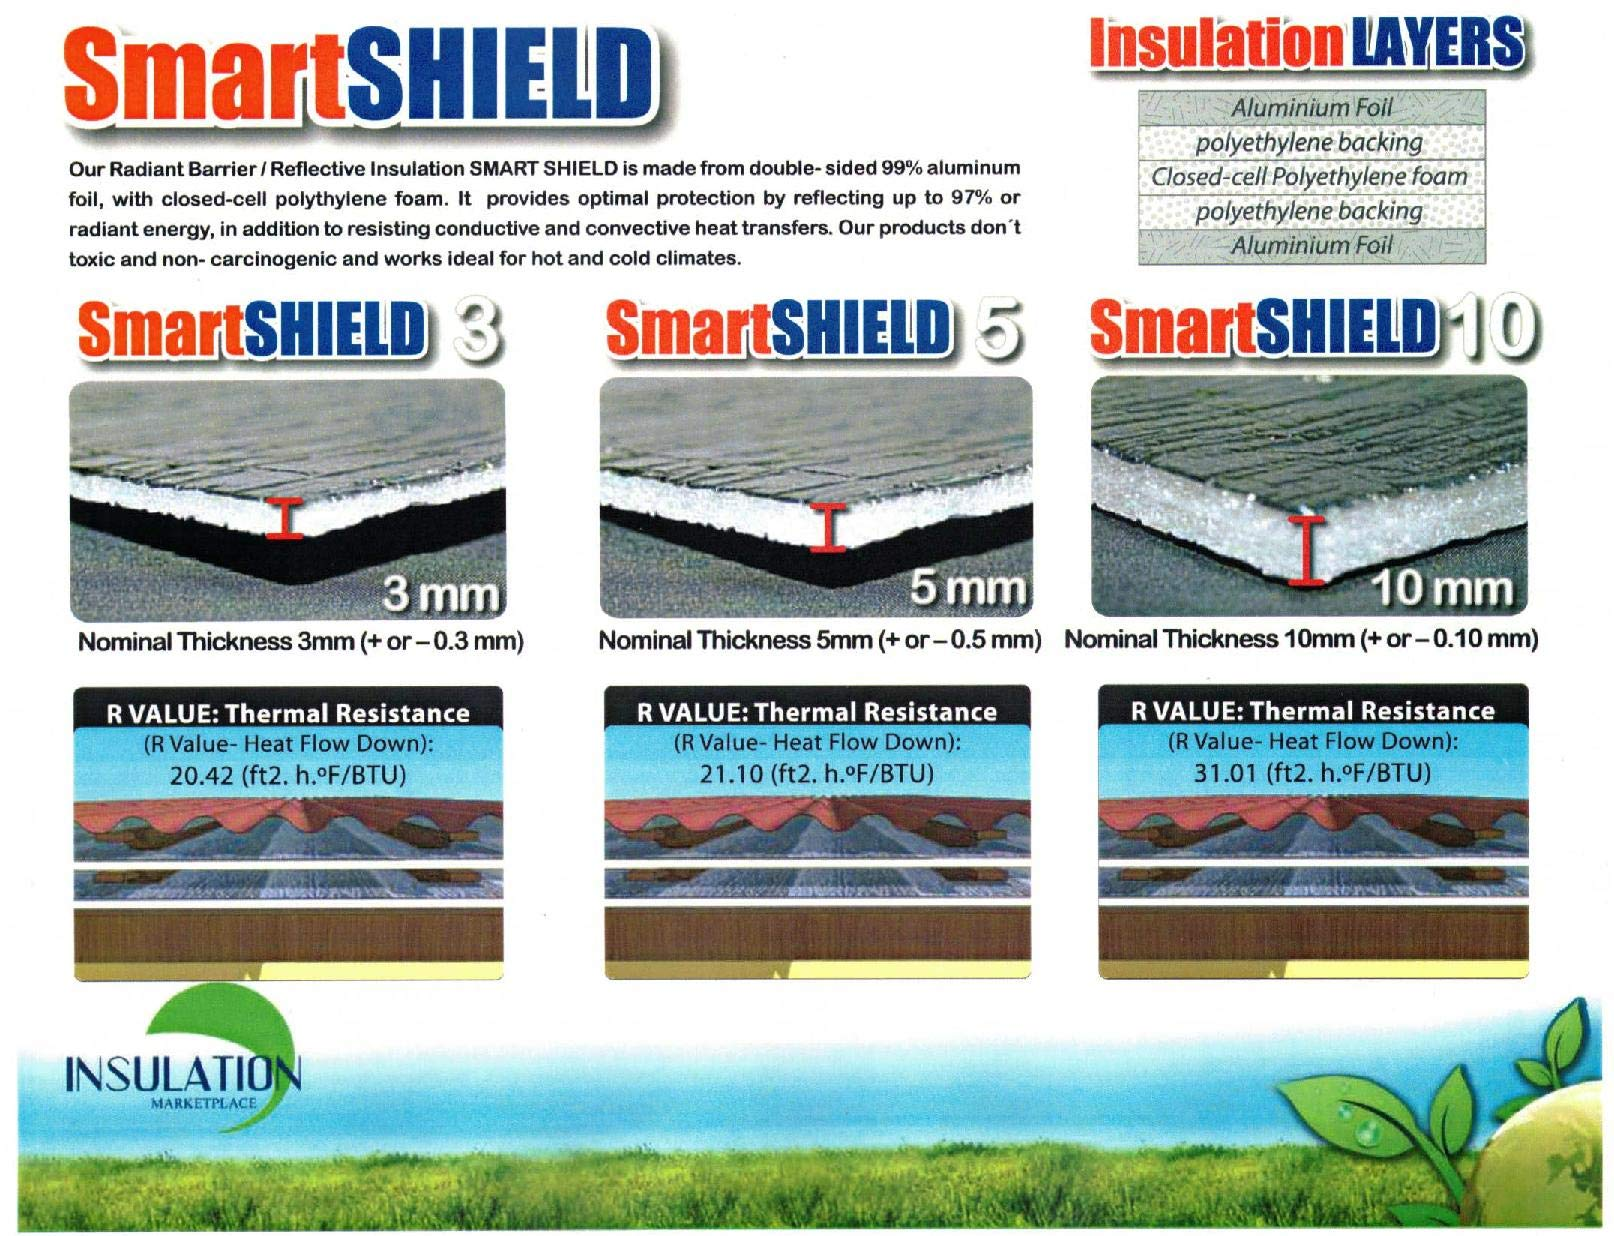 SmartSHIELD -5 Reflective Insulation, Heat-Cold Shield, Radiant Barrier, Thermal Insulation 48''X50ft by Insulation Market Place LLC (Image #1)